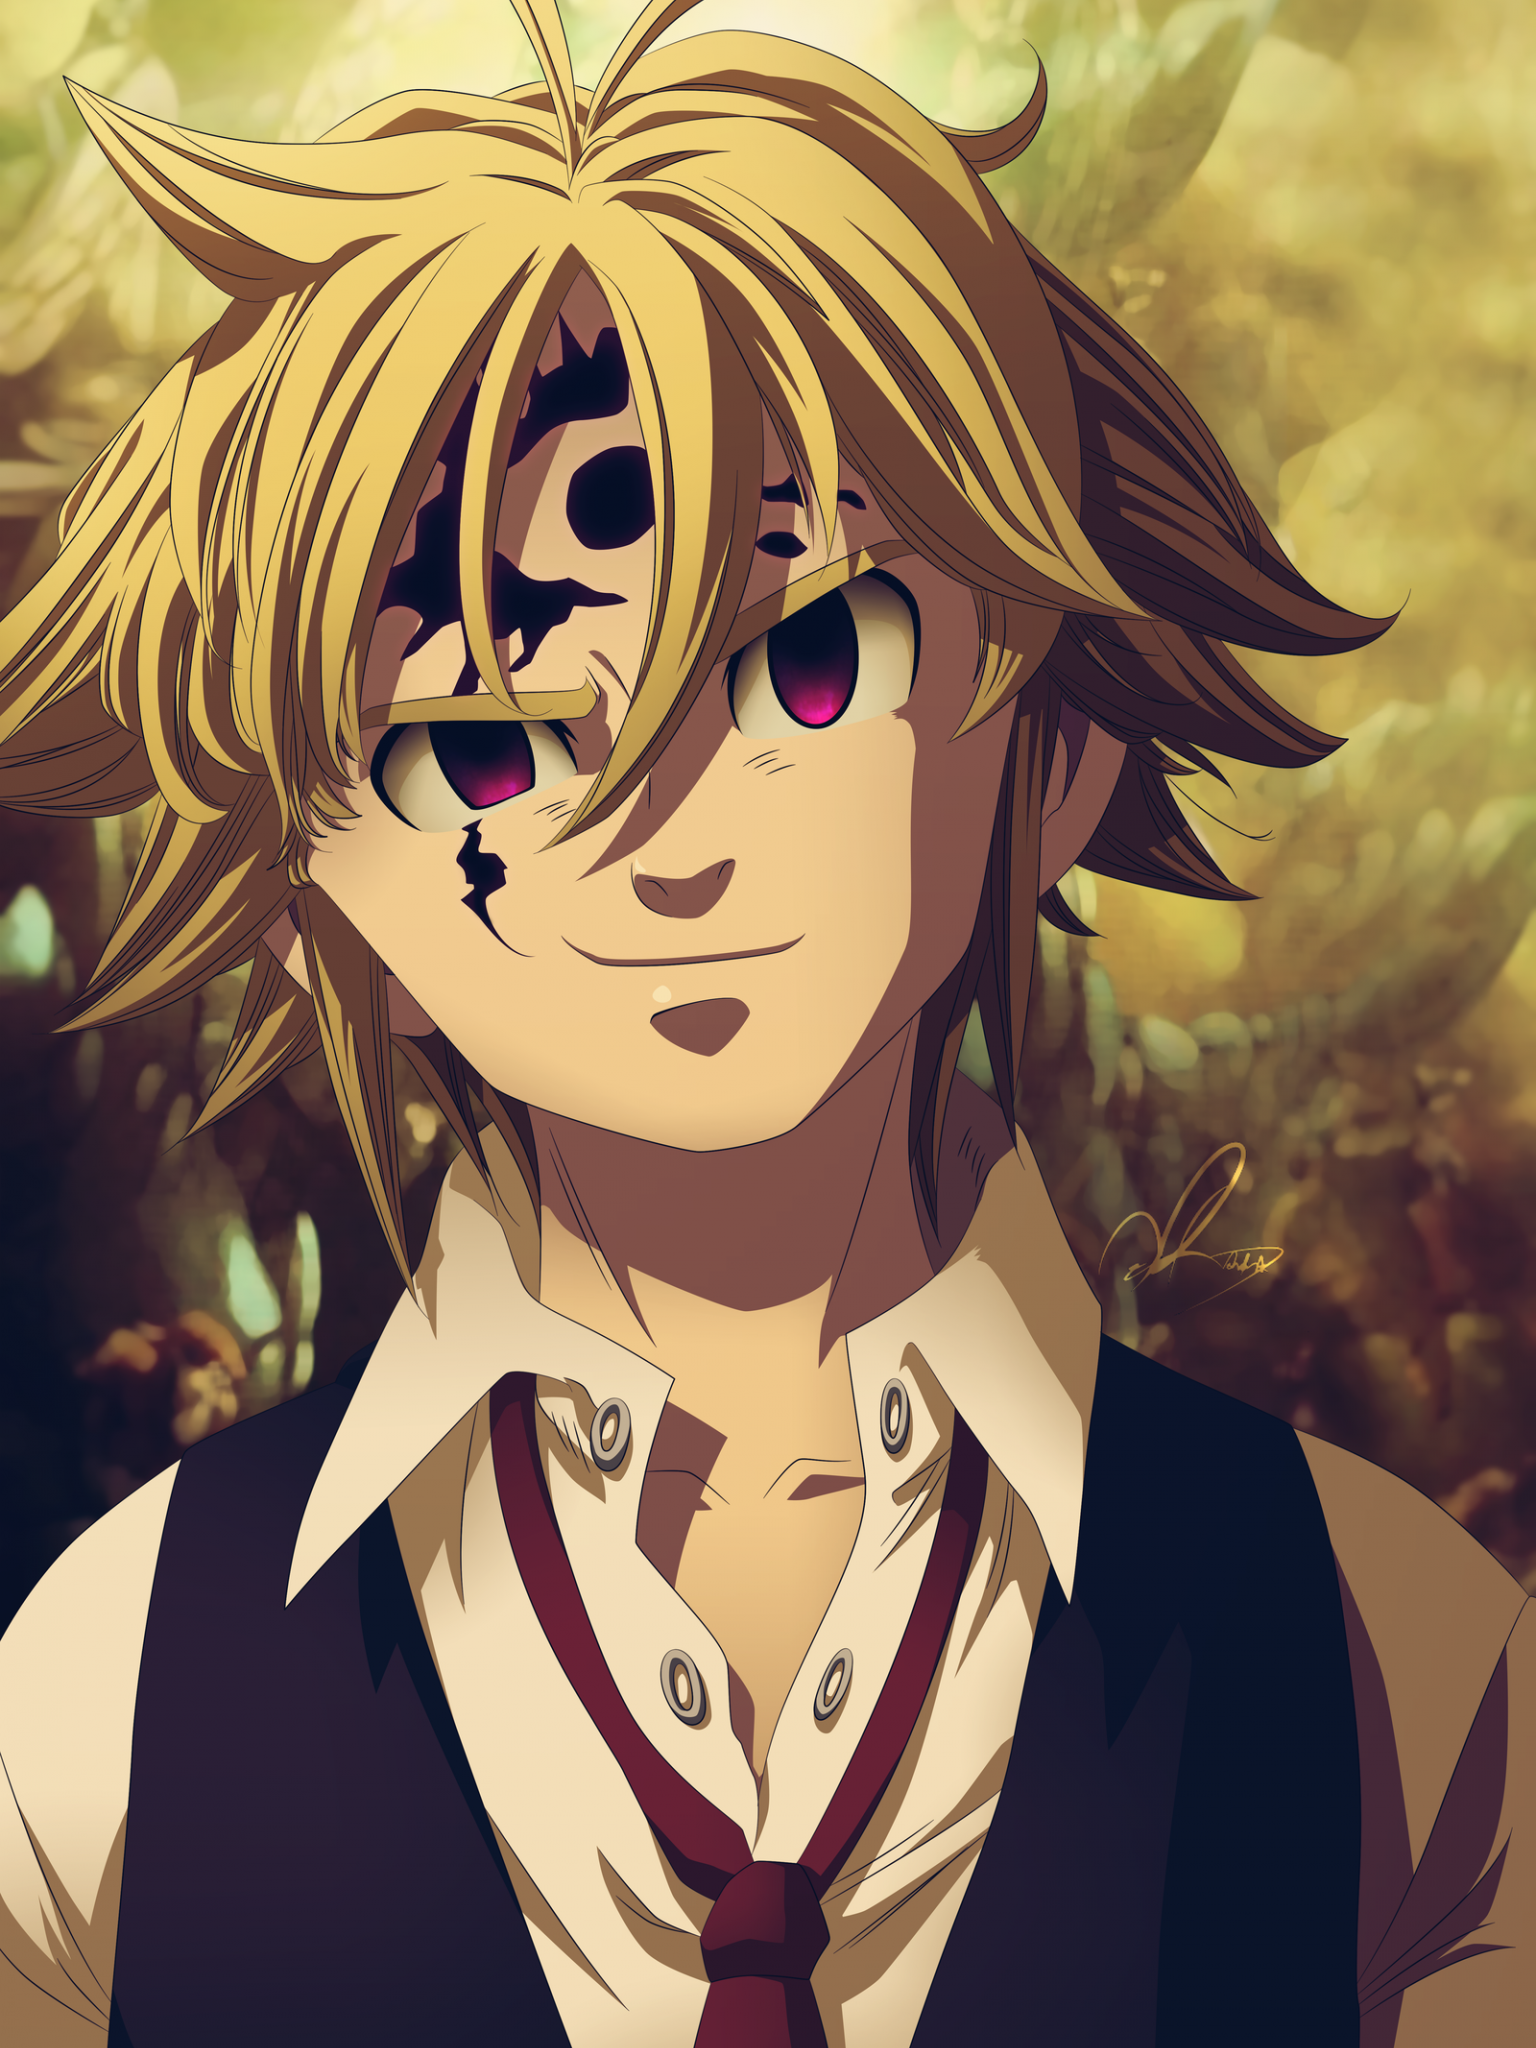 Free download Nanatsu No Taizai 194 The Return Of The King Demon